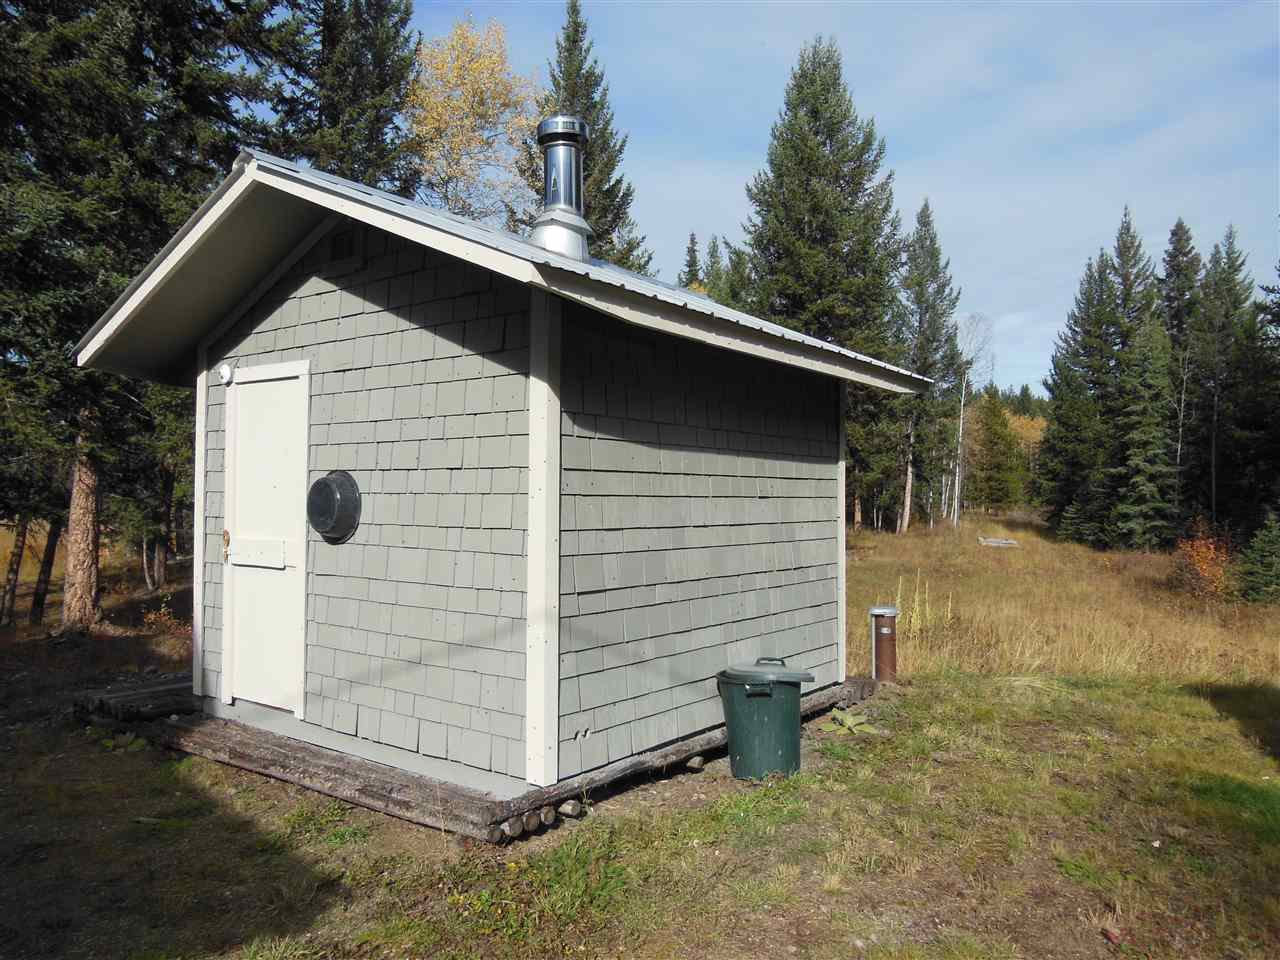 Photo 22: Photos: 3535 WESTWICK PIT Road: 150 Mile House House for sale (Williams Lake (Zone 27))  : MLS®# R2488772